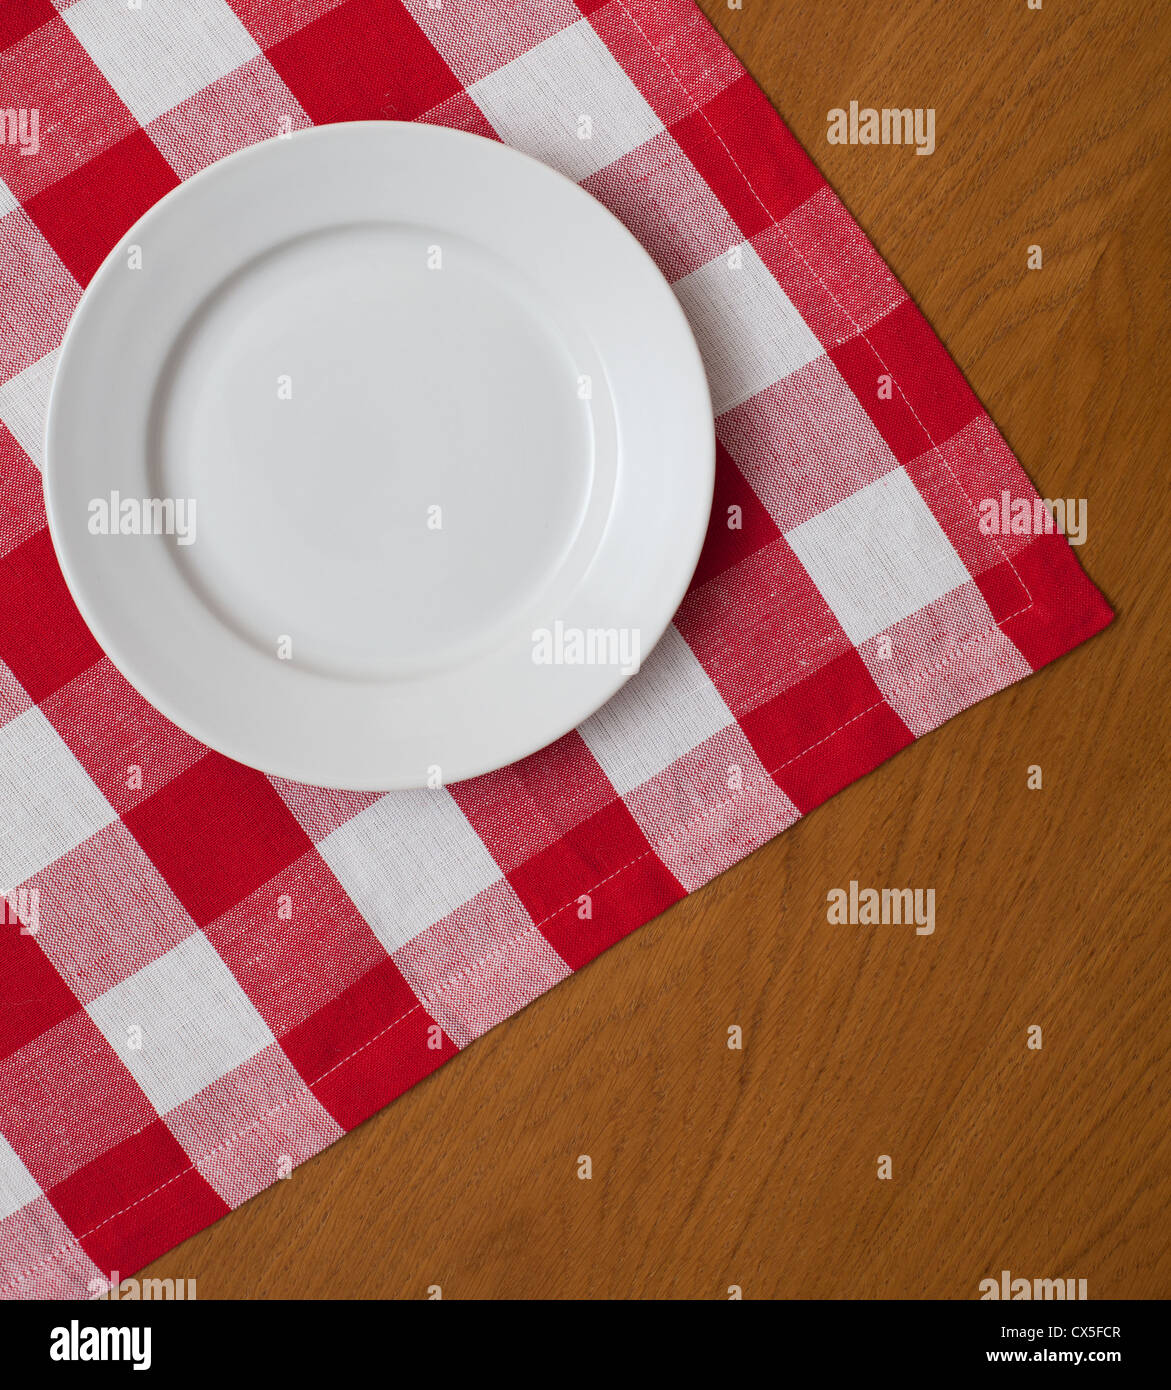 white plate on wooden table with red gingham tablecloth - Stock Image